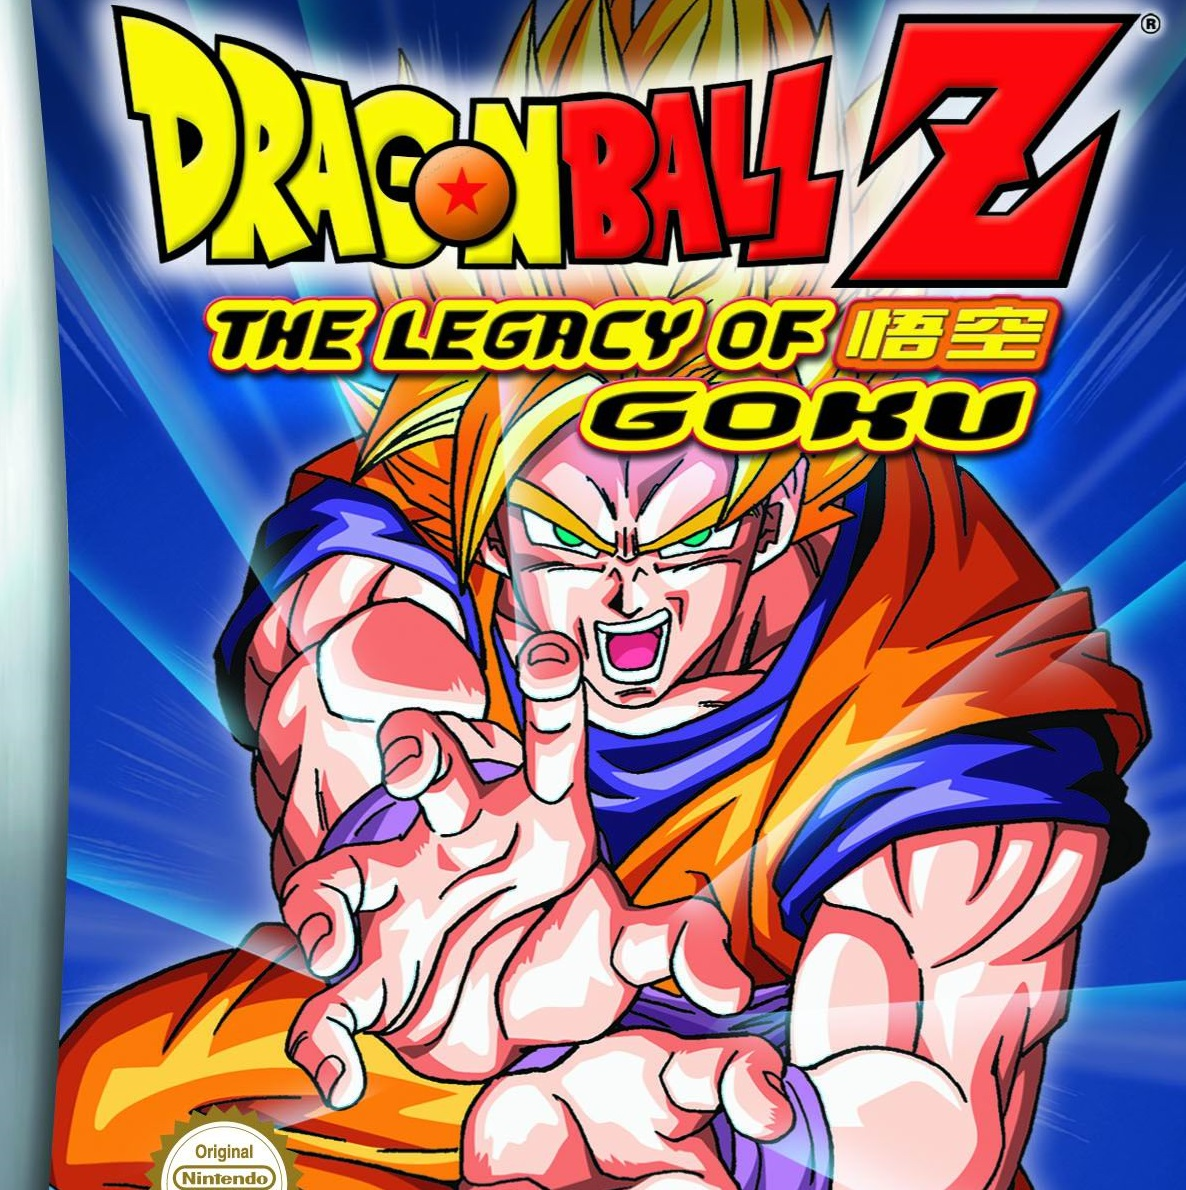 DragonBall Z Legacy of Goku